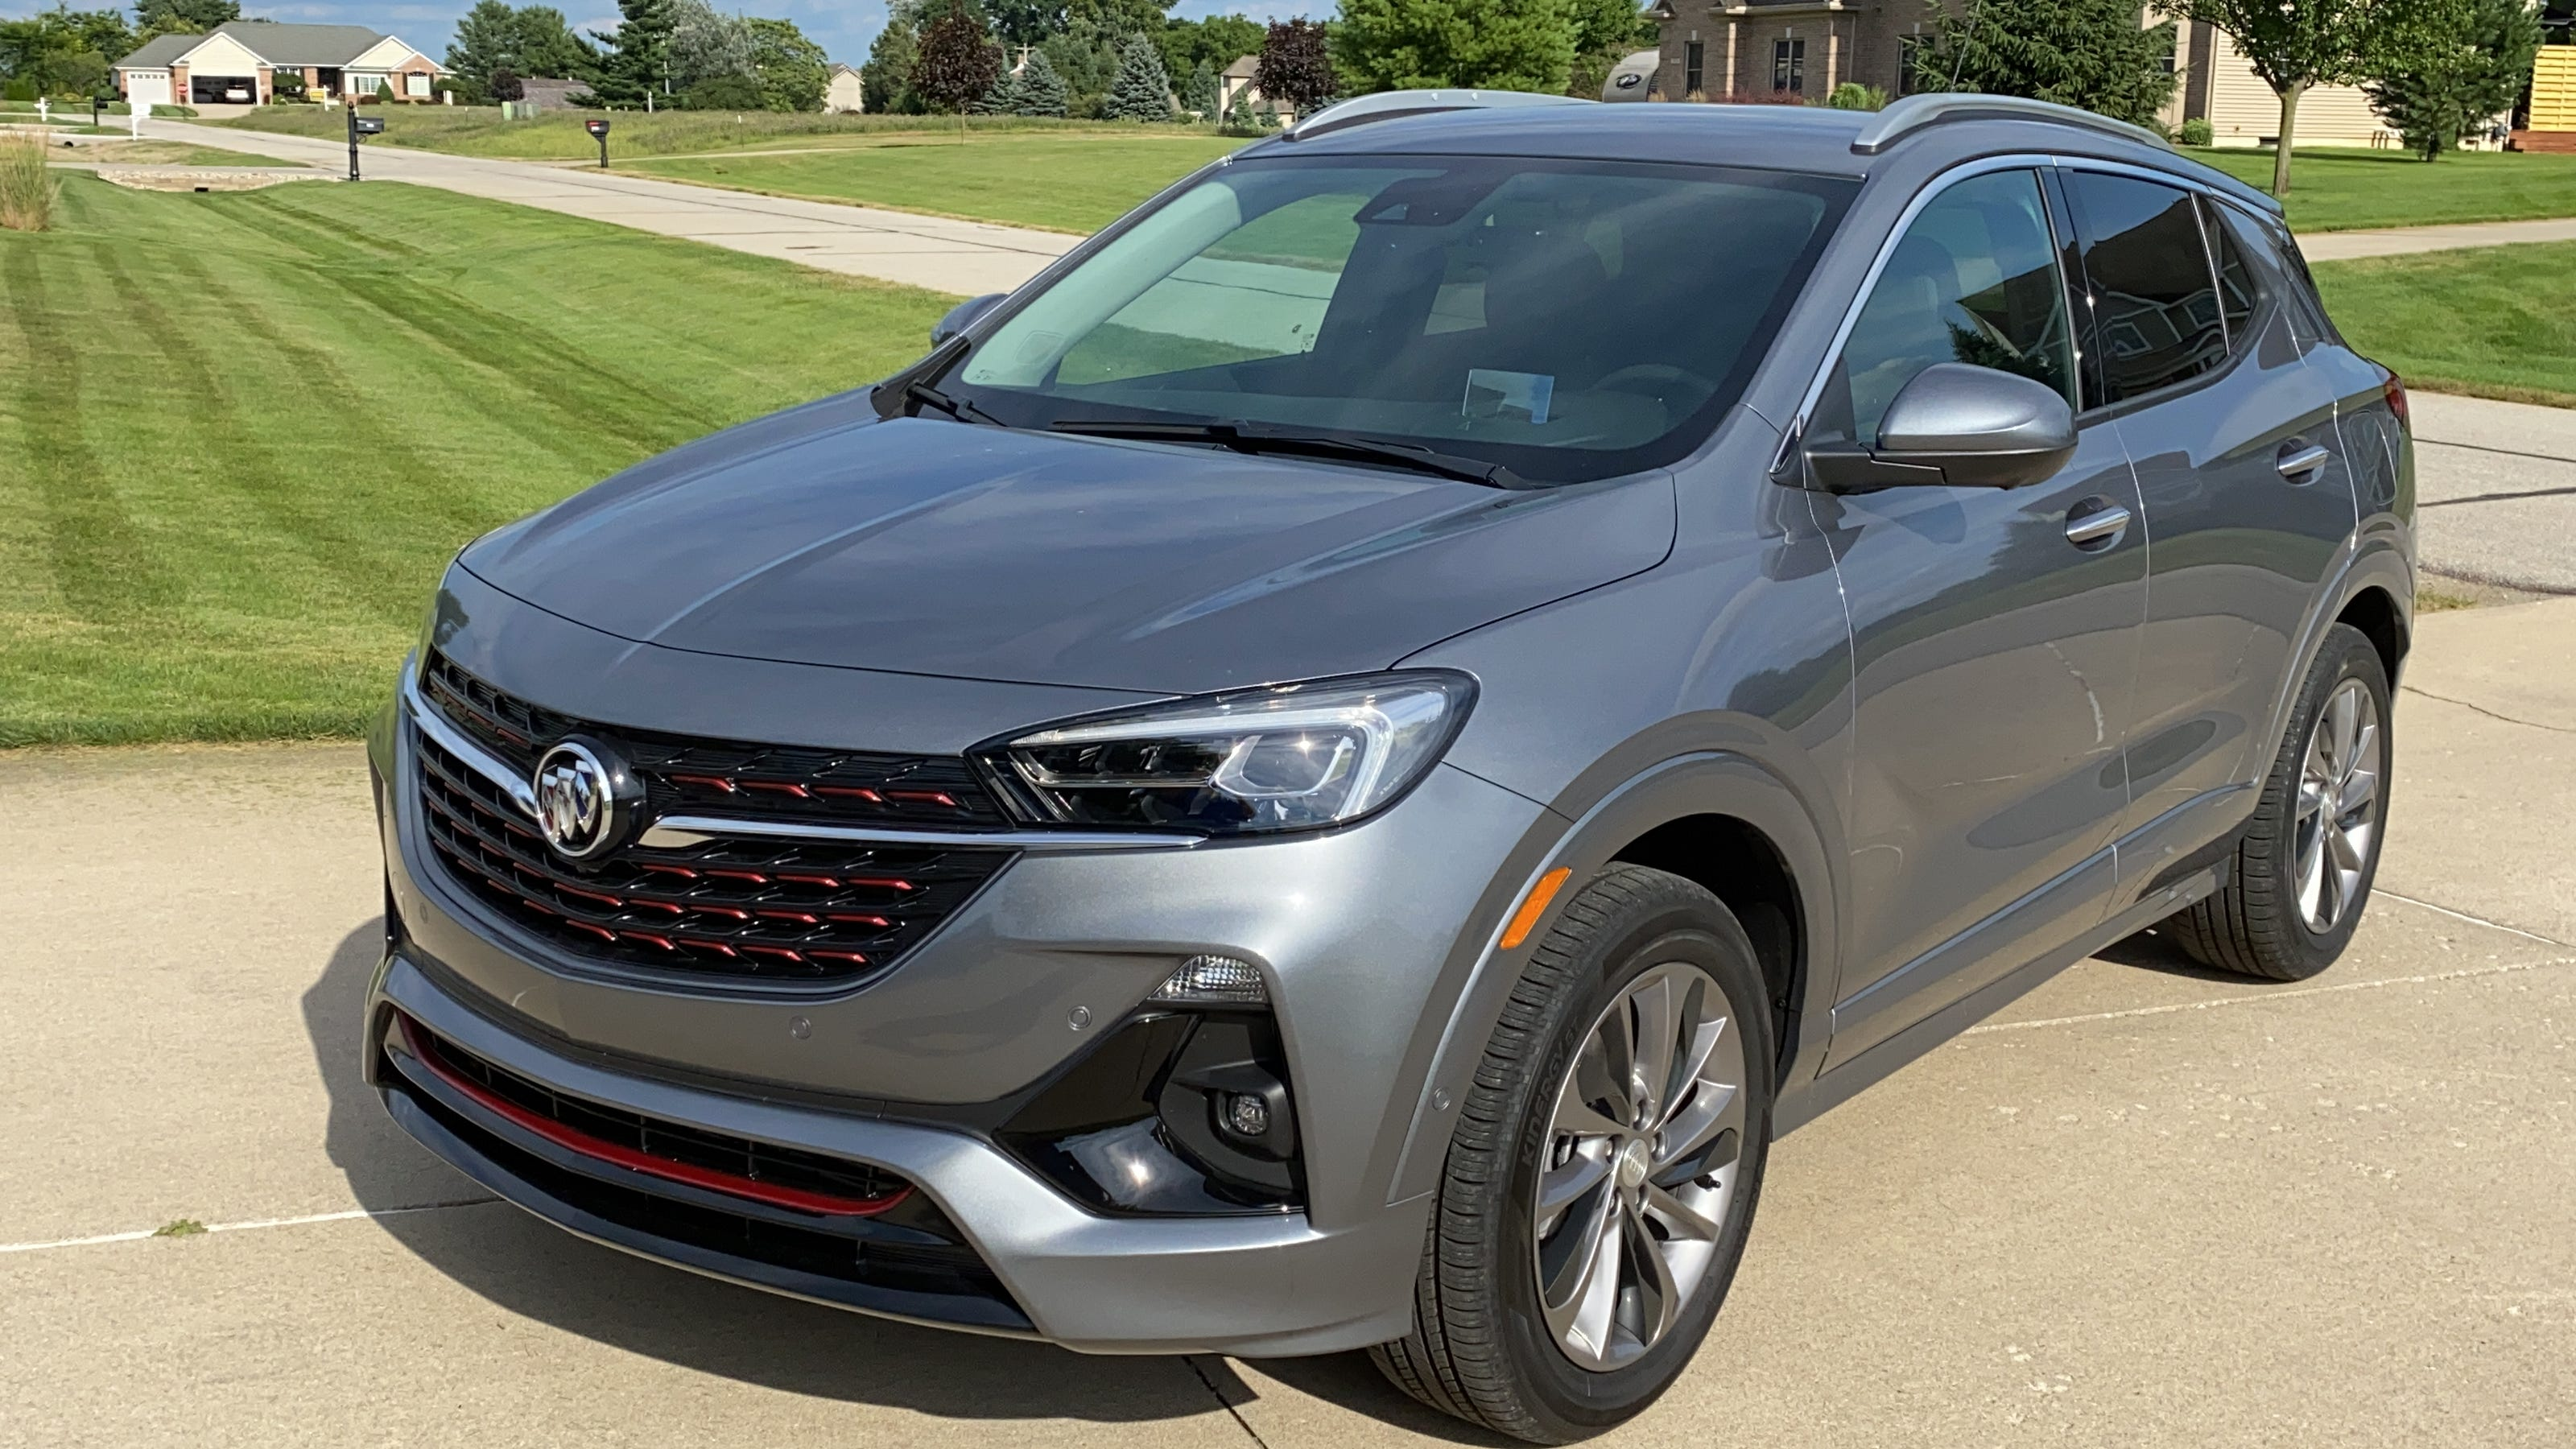 2020 buick encore gx suv completes the brand's transformation